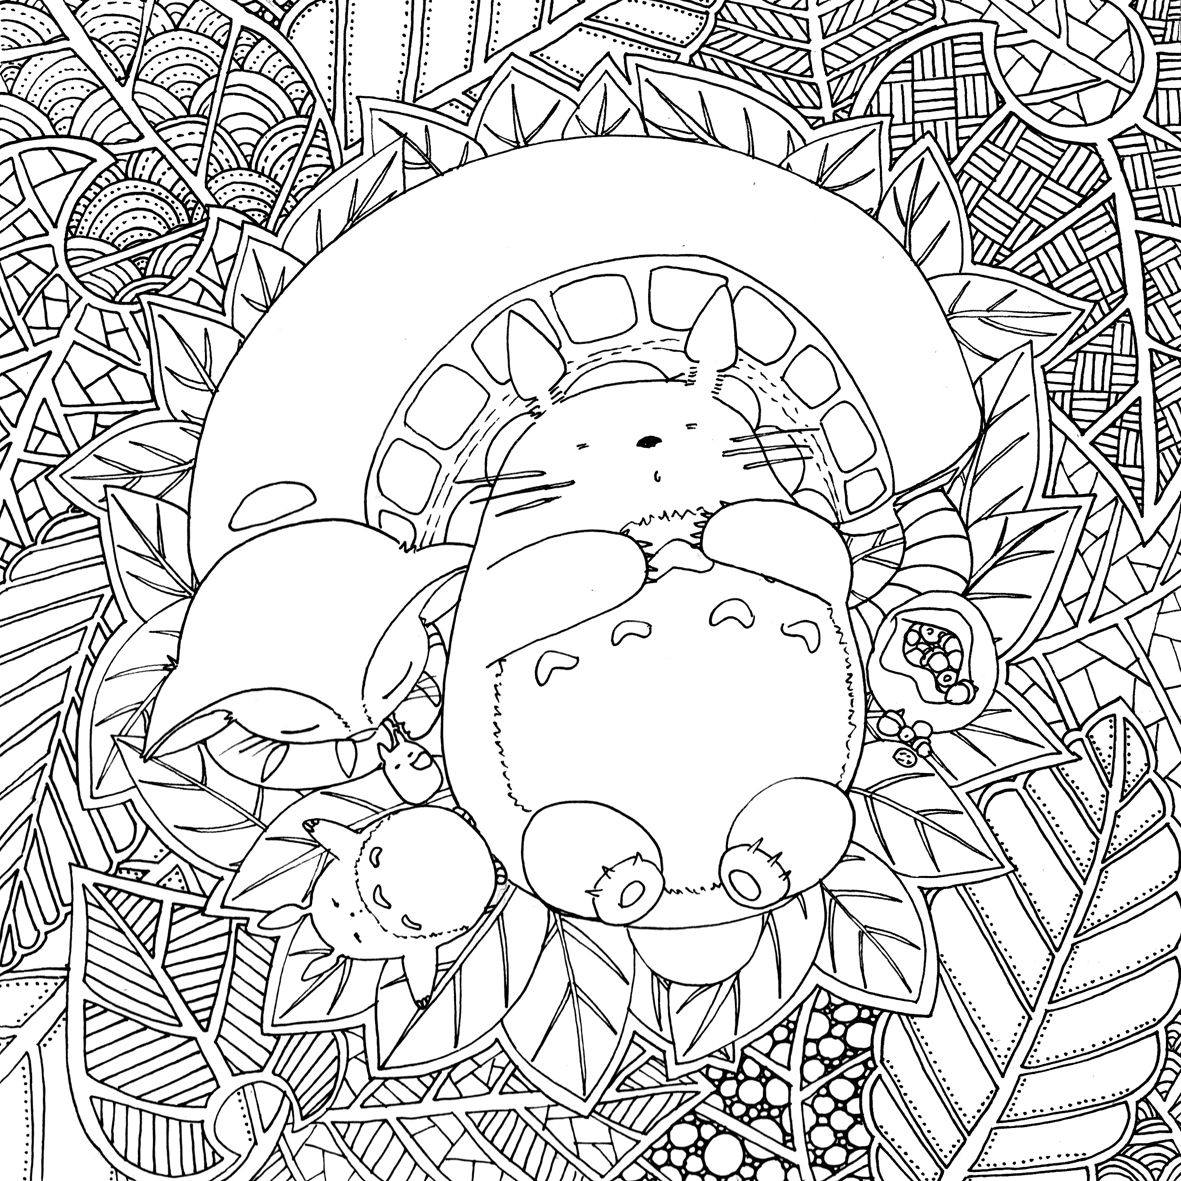 Doodles and totoro part 2 Totoro Colouring and Colouring in